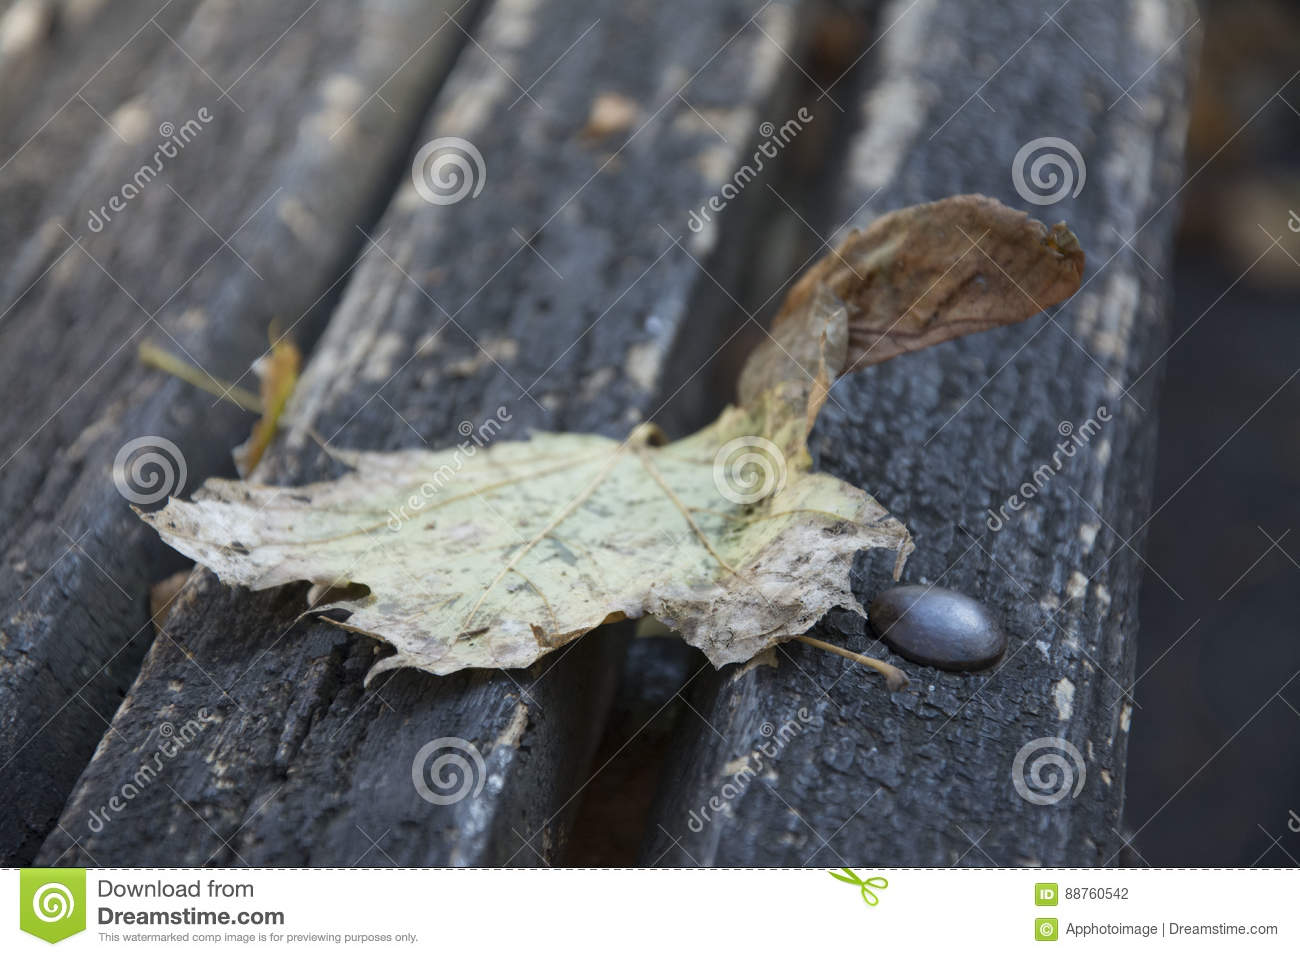 Leafes on a wood banch.